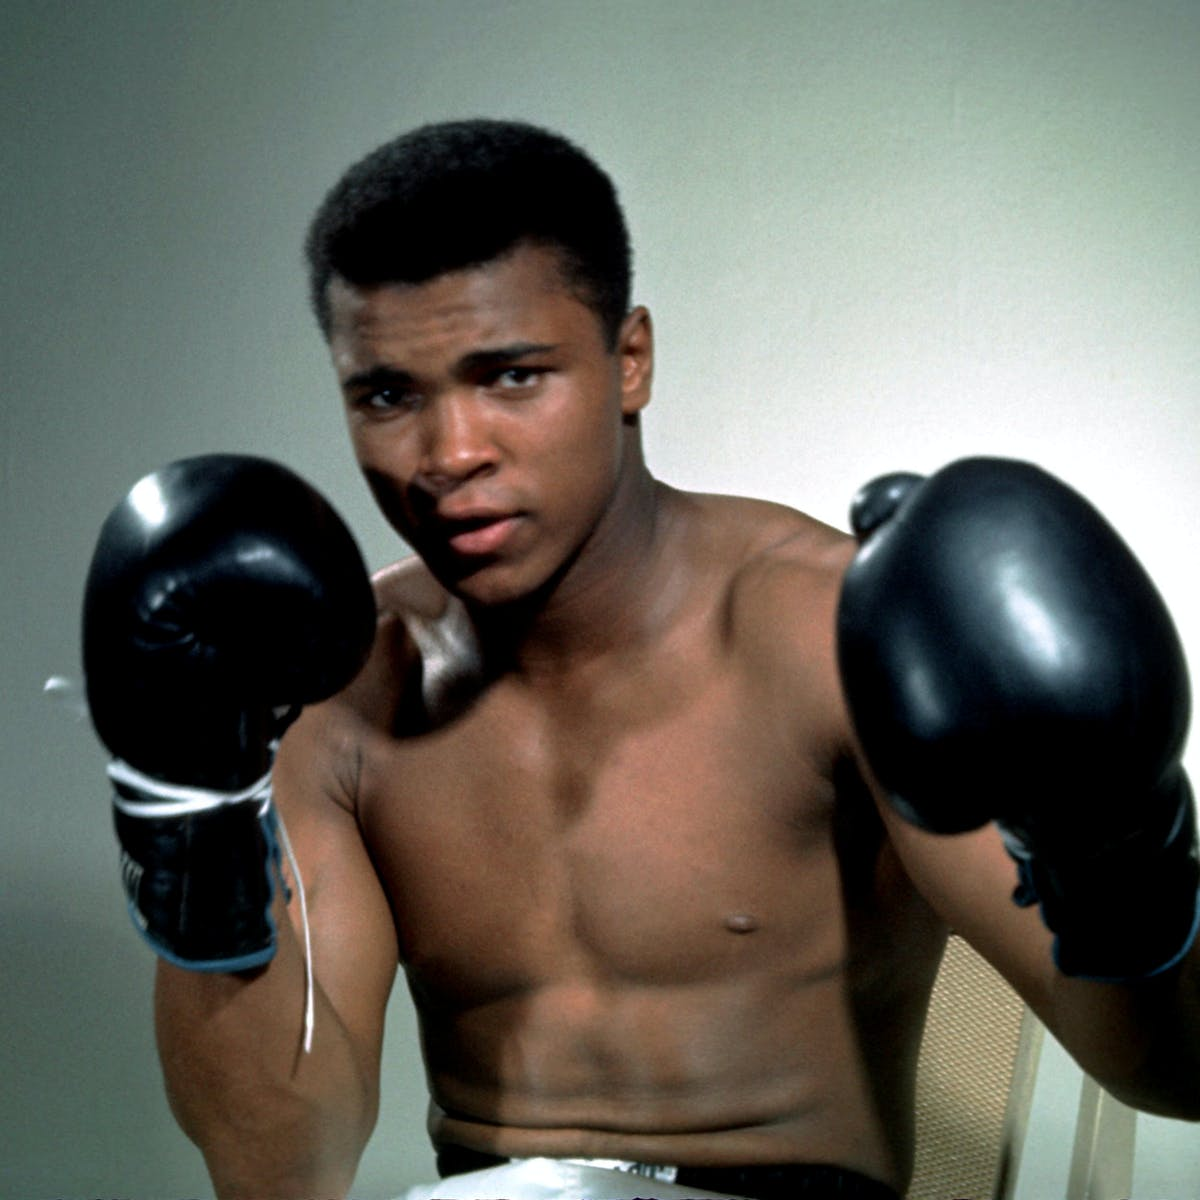 Muhammad Ali Rewrote The Rule Book For Athletes As Celebrities And Activists